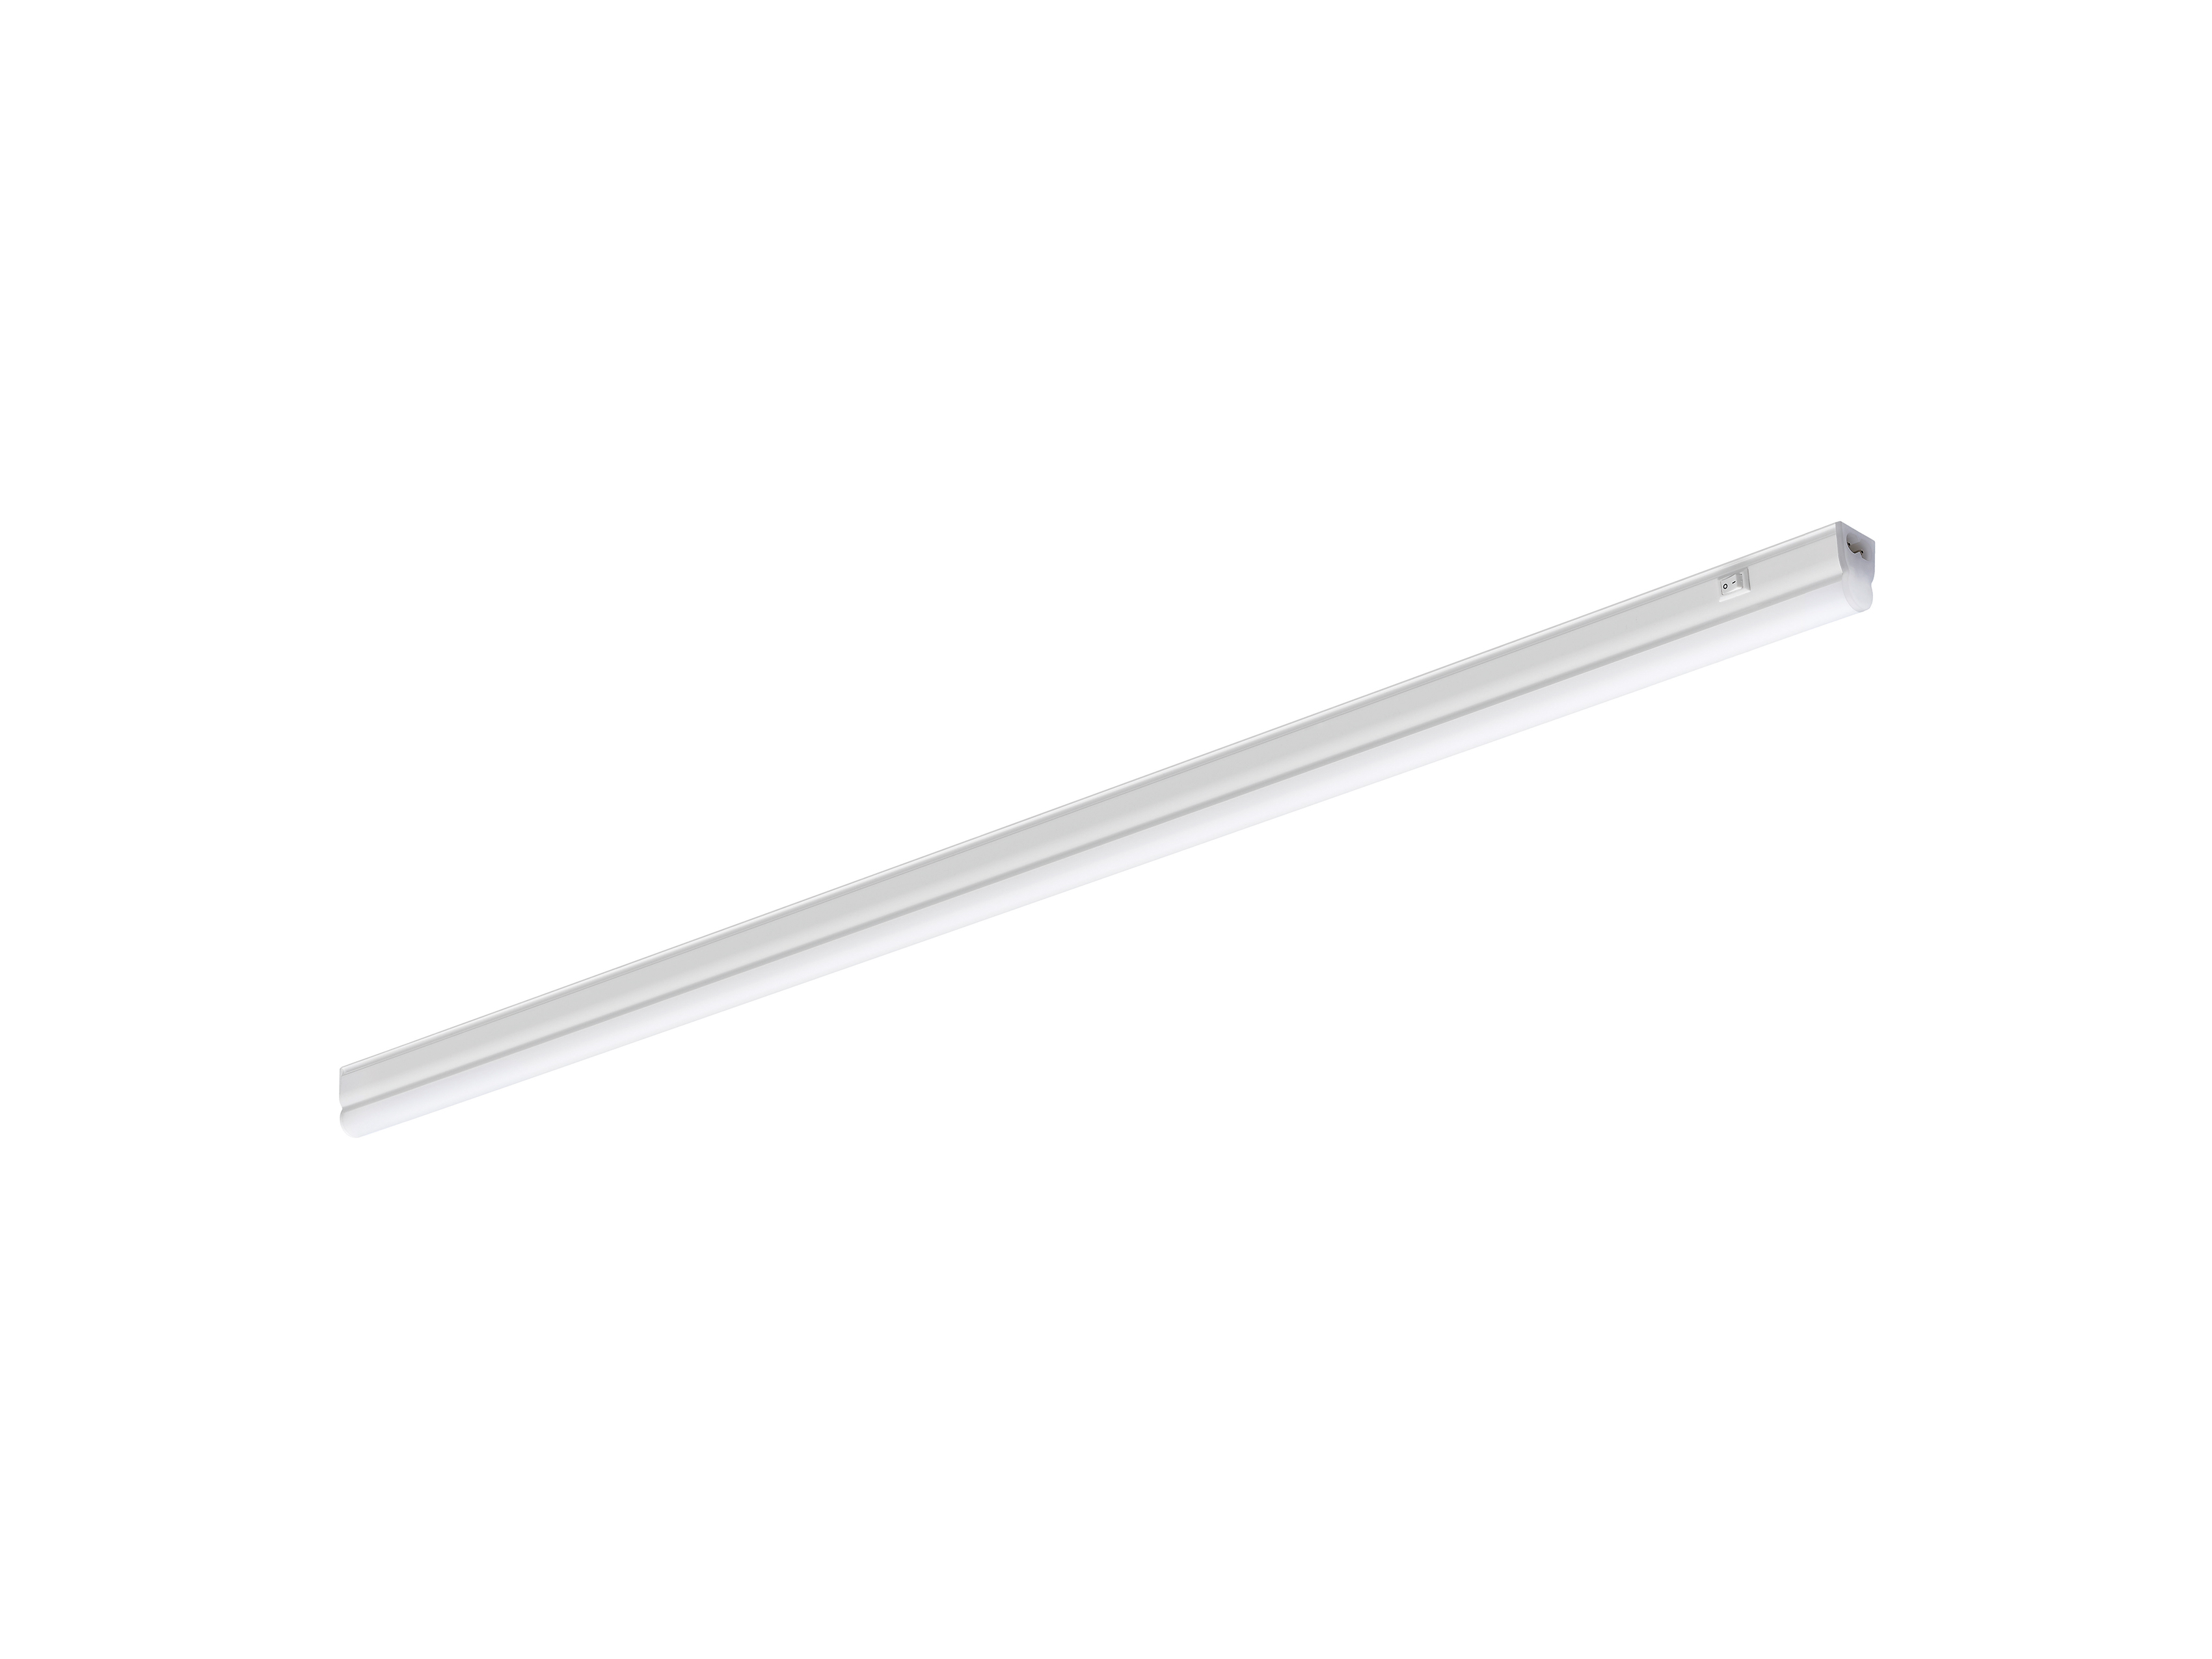 Details About Sylvania Pipe Led Under Cabinet Light 4w Warm White 300mm Length